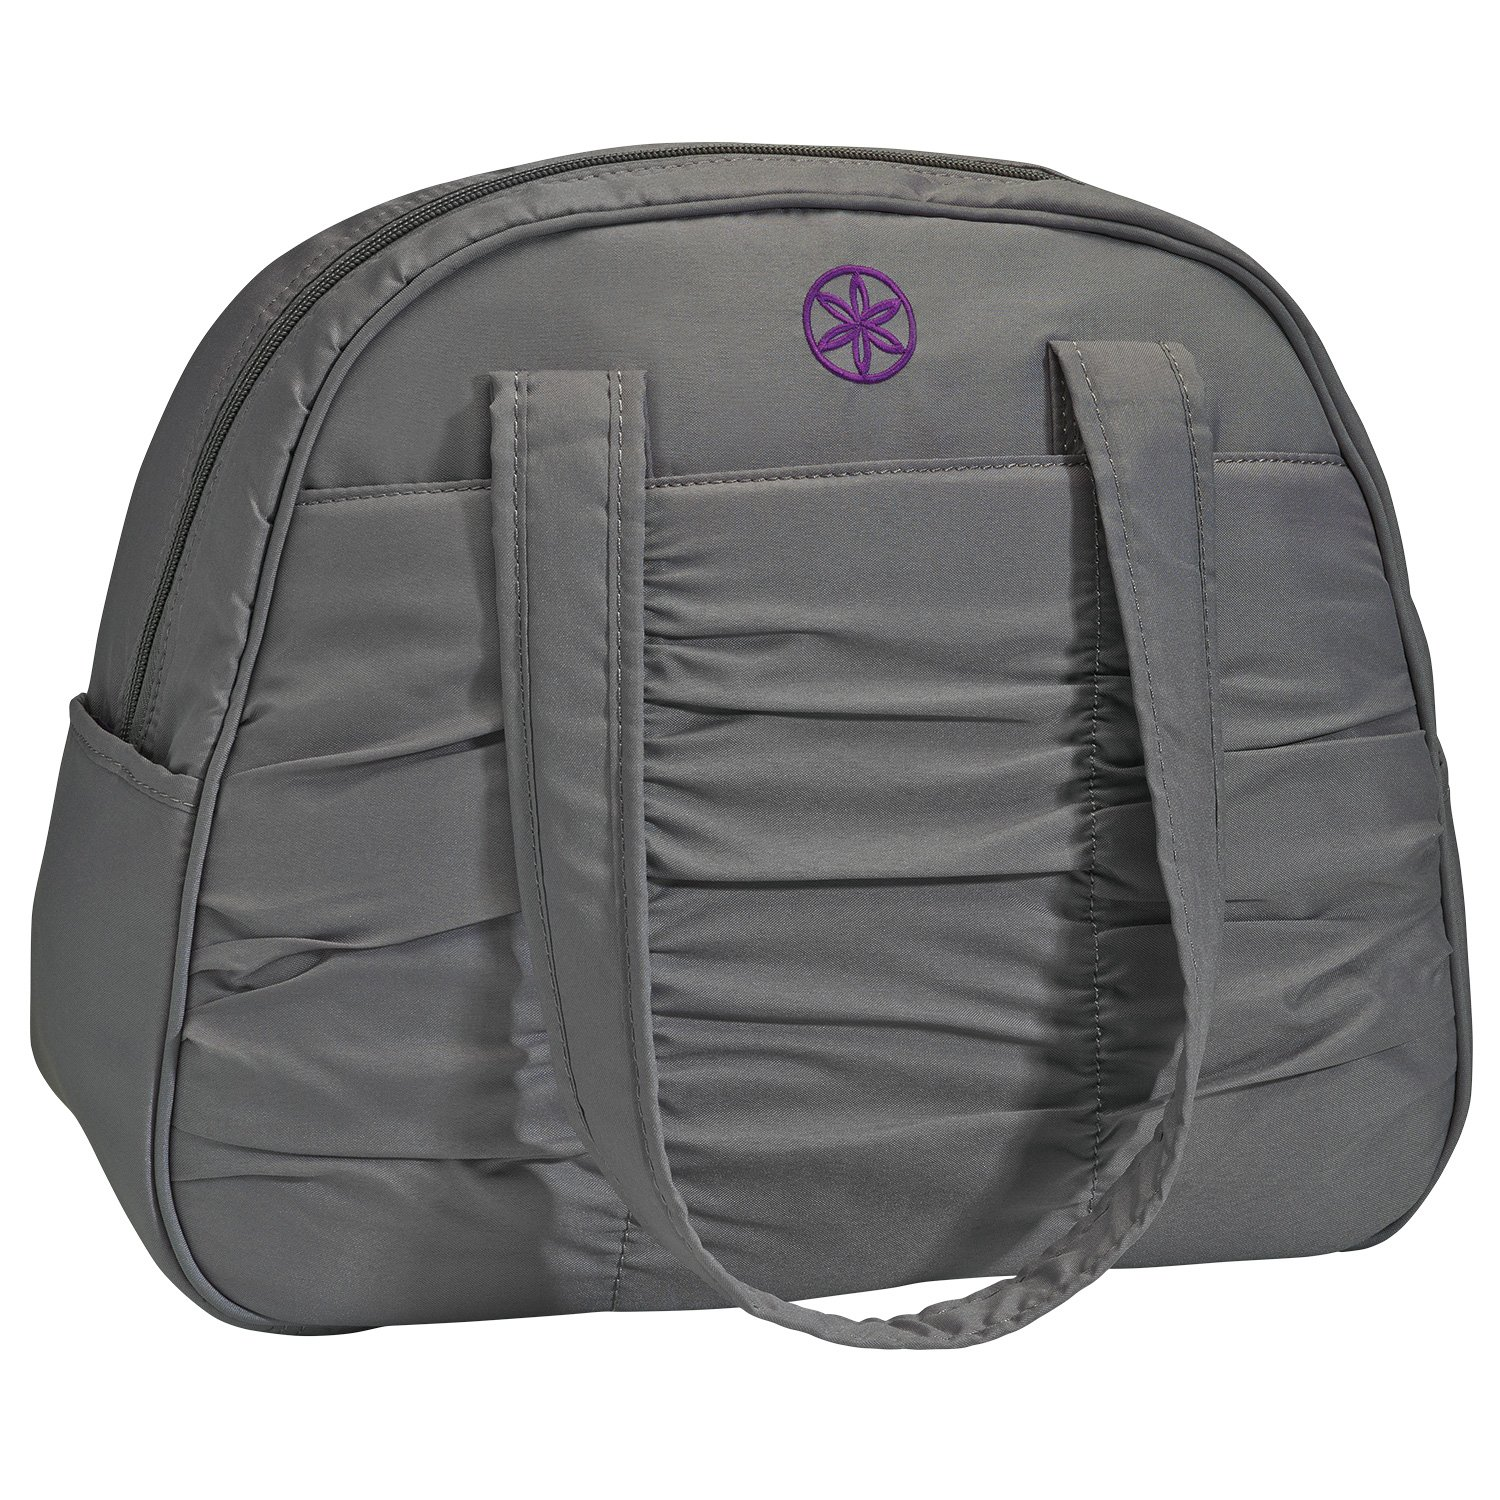 Gaiam Metro Gym Bag, Unisex Adulto, 60535, Gris, Talla Unica ...